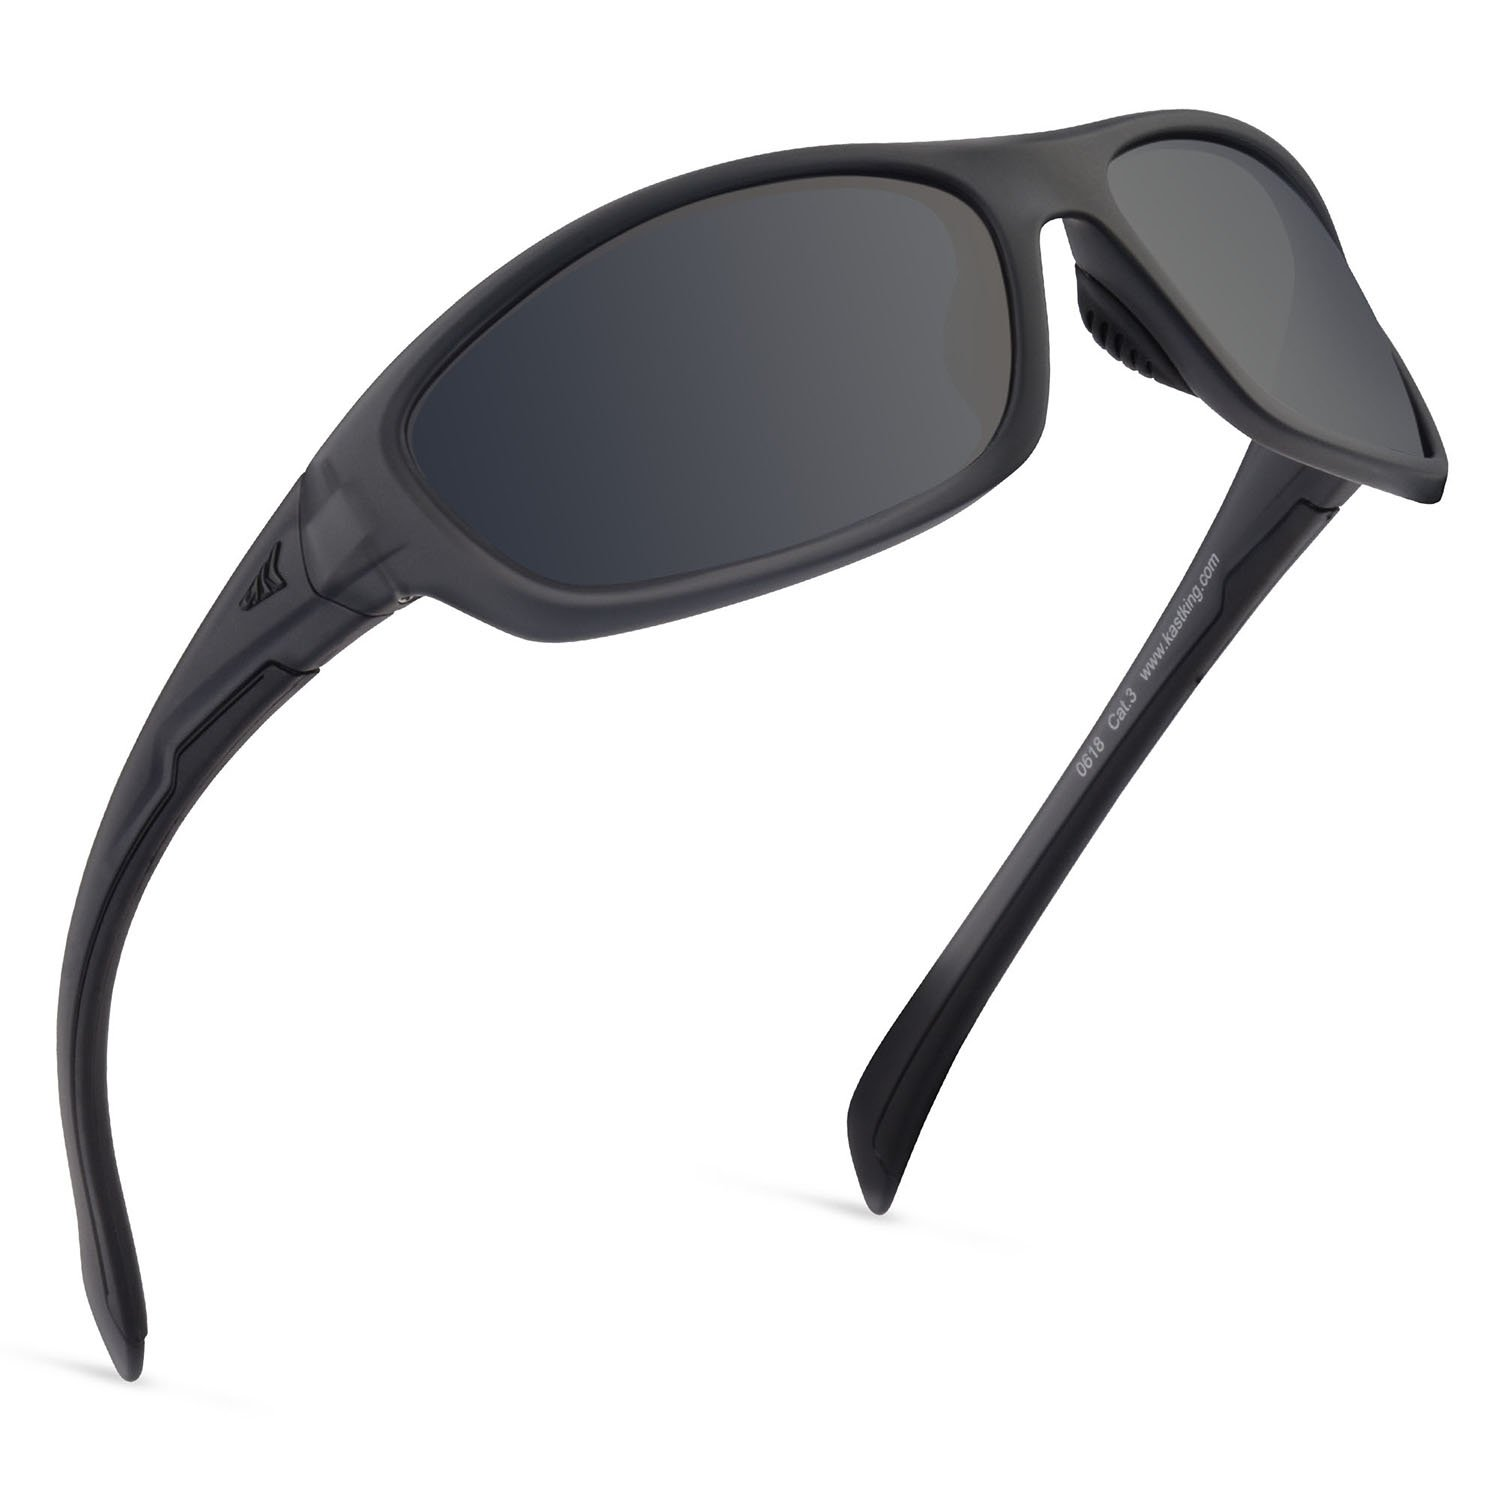 b262a2c29dac KEY FEATURES - Polarized lenses reduce glare - Impact resistant TAC lenses  protect your eyes from flying objects - Lightweight, durable, and  comfortable ...